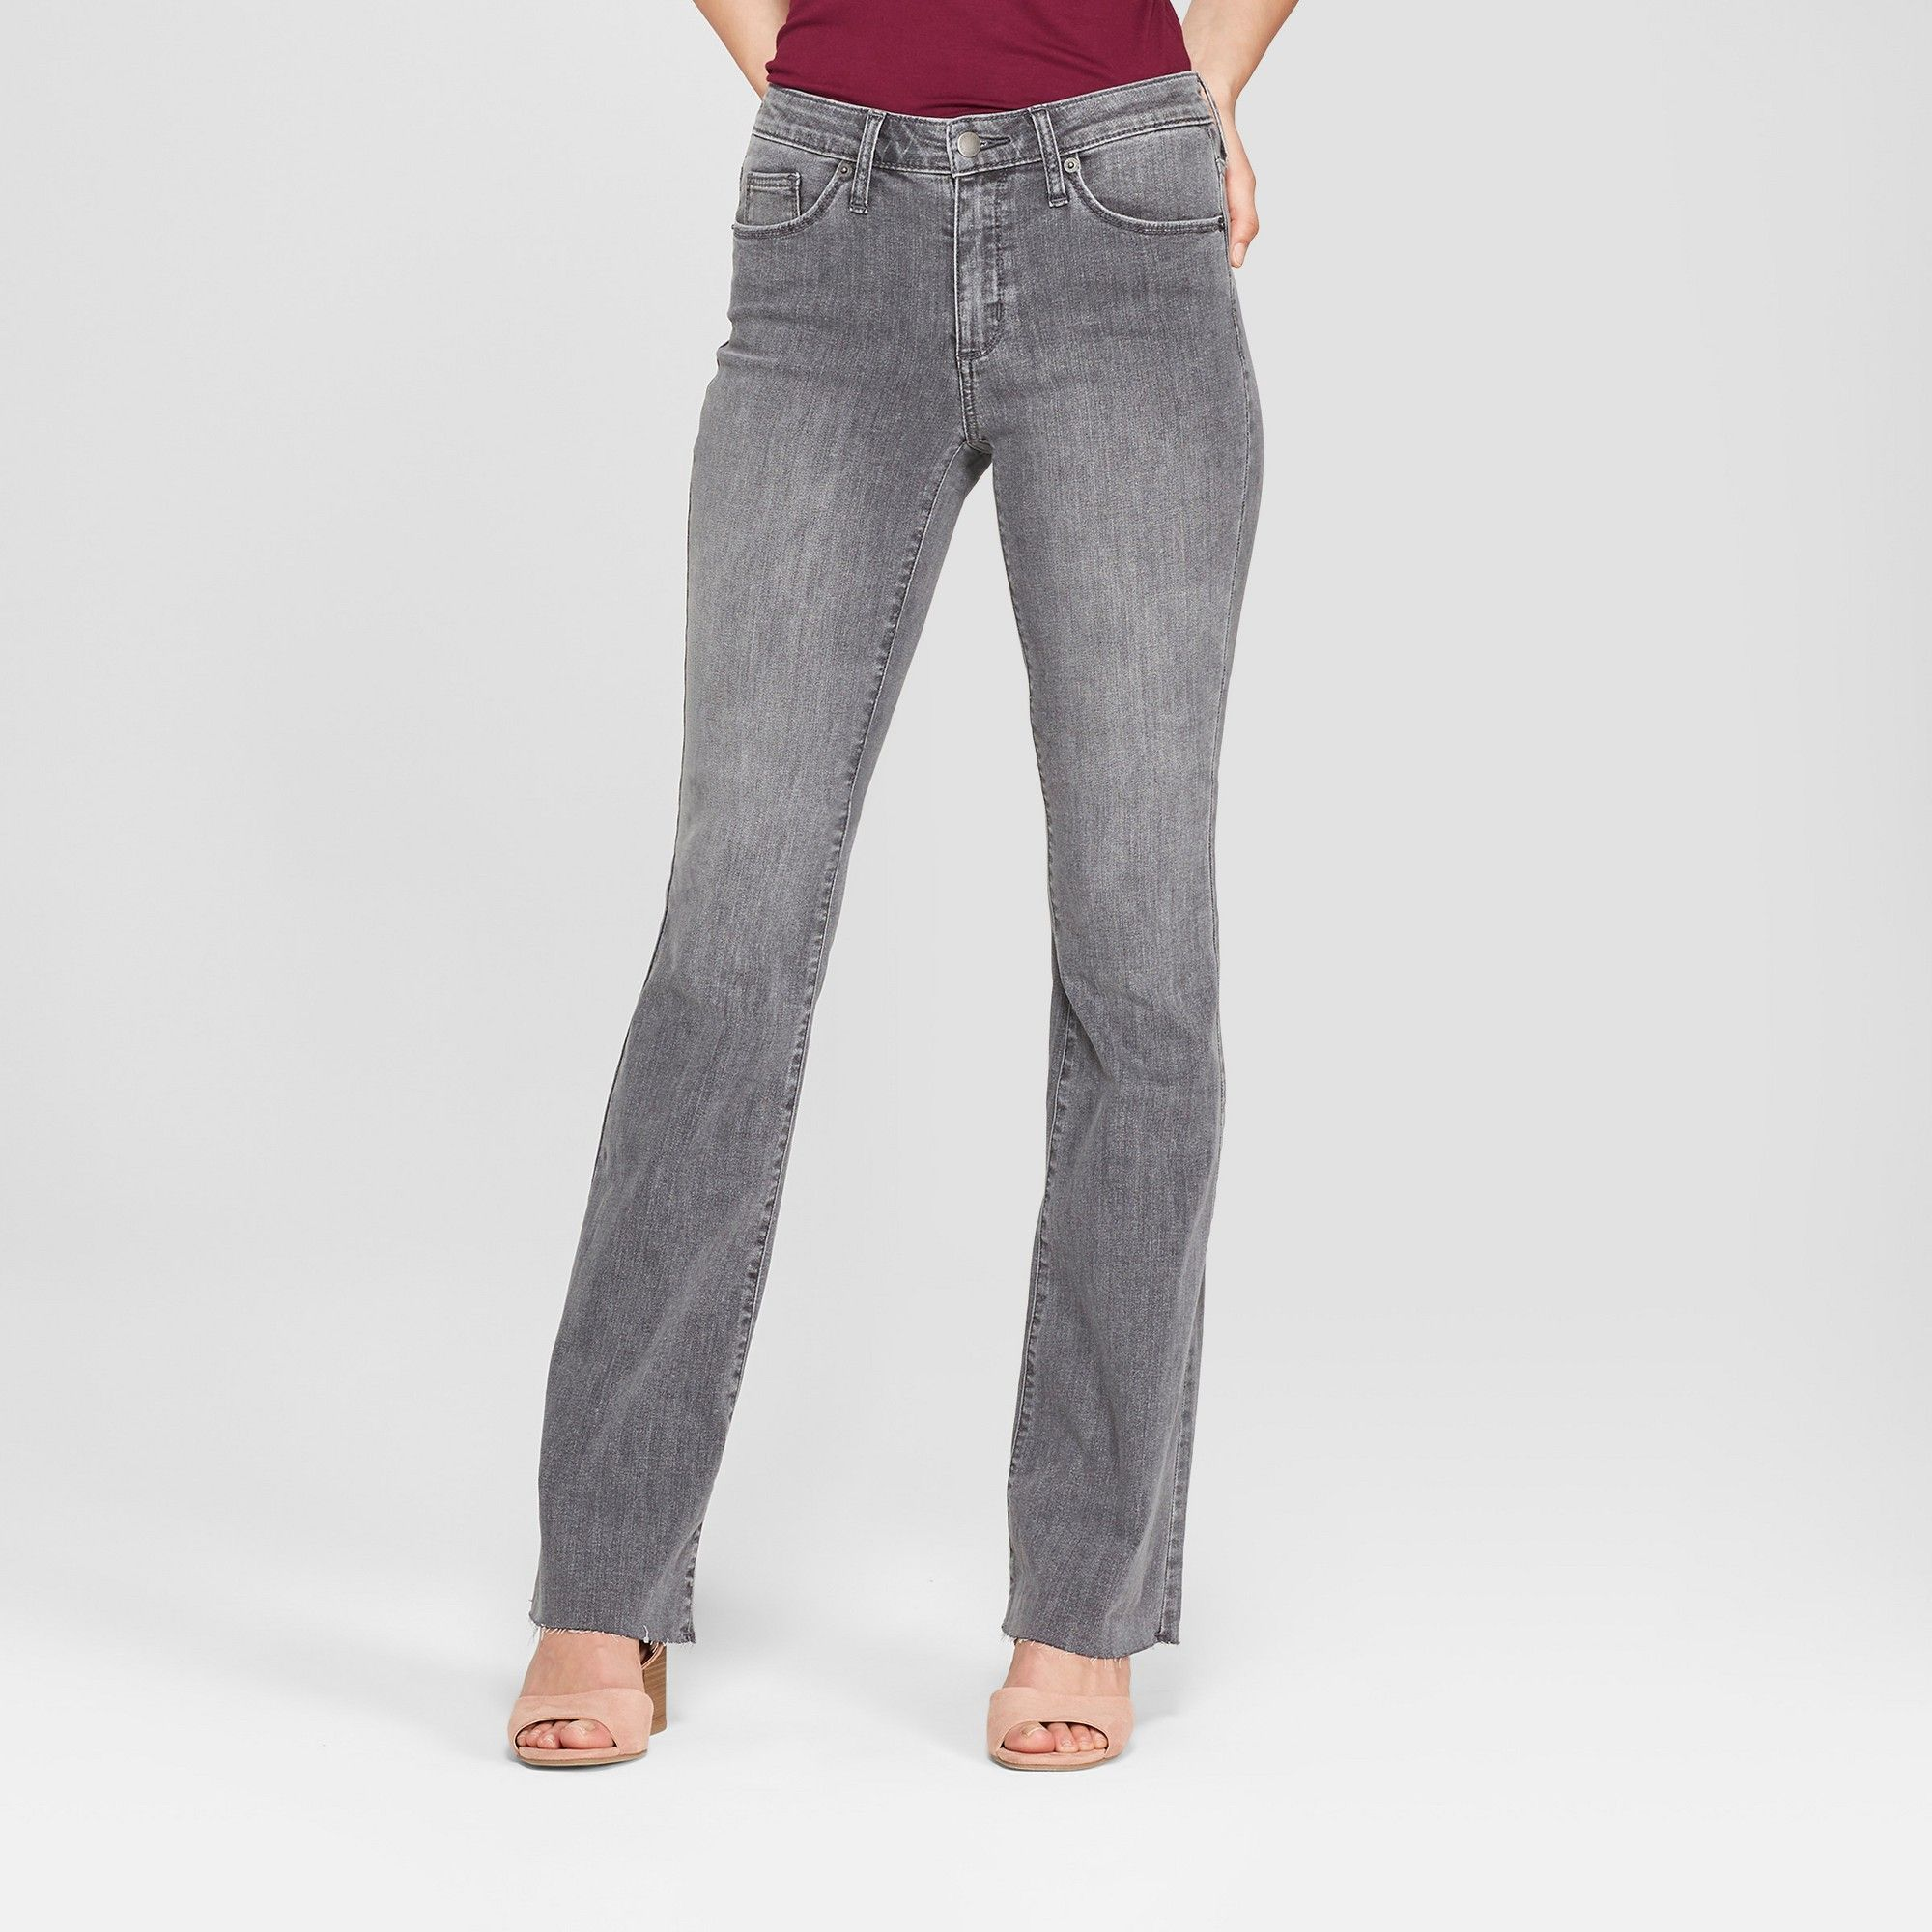 efa36815dc3 Women s High-Rise Flare Jeans - Universal Thread Gray Wash 16 Short ...